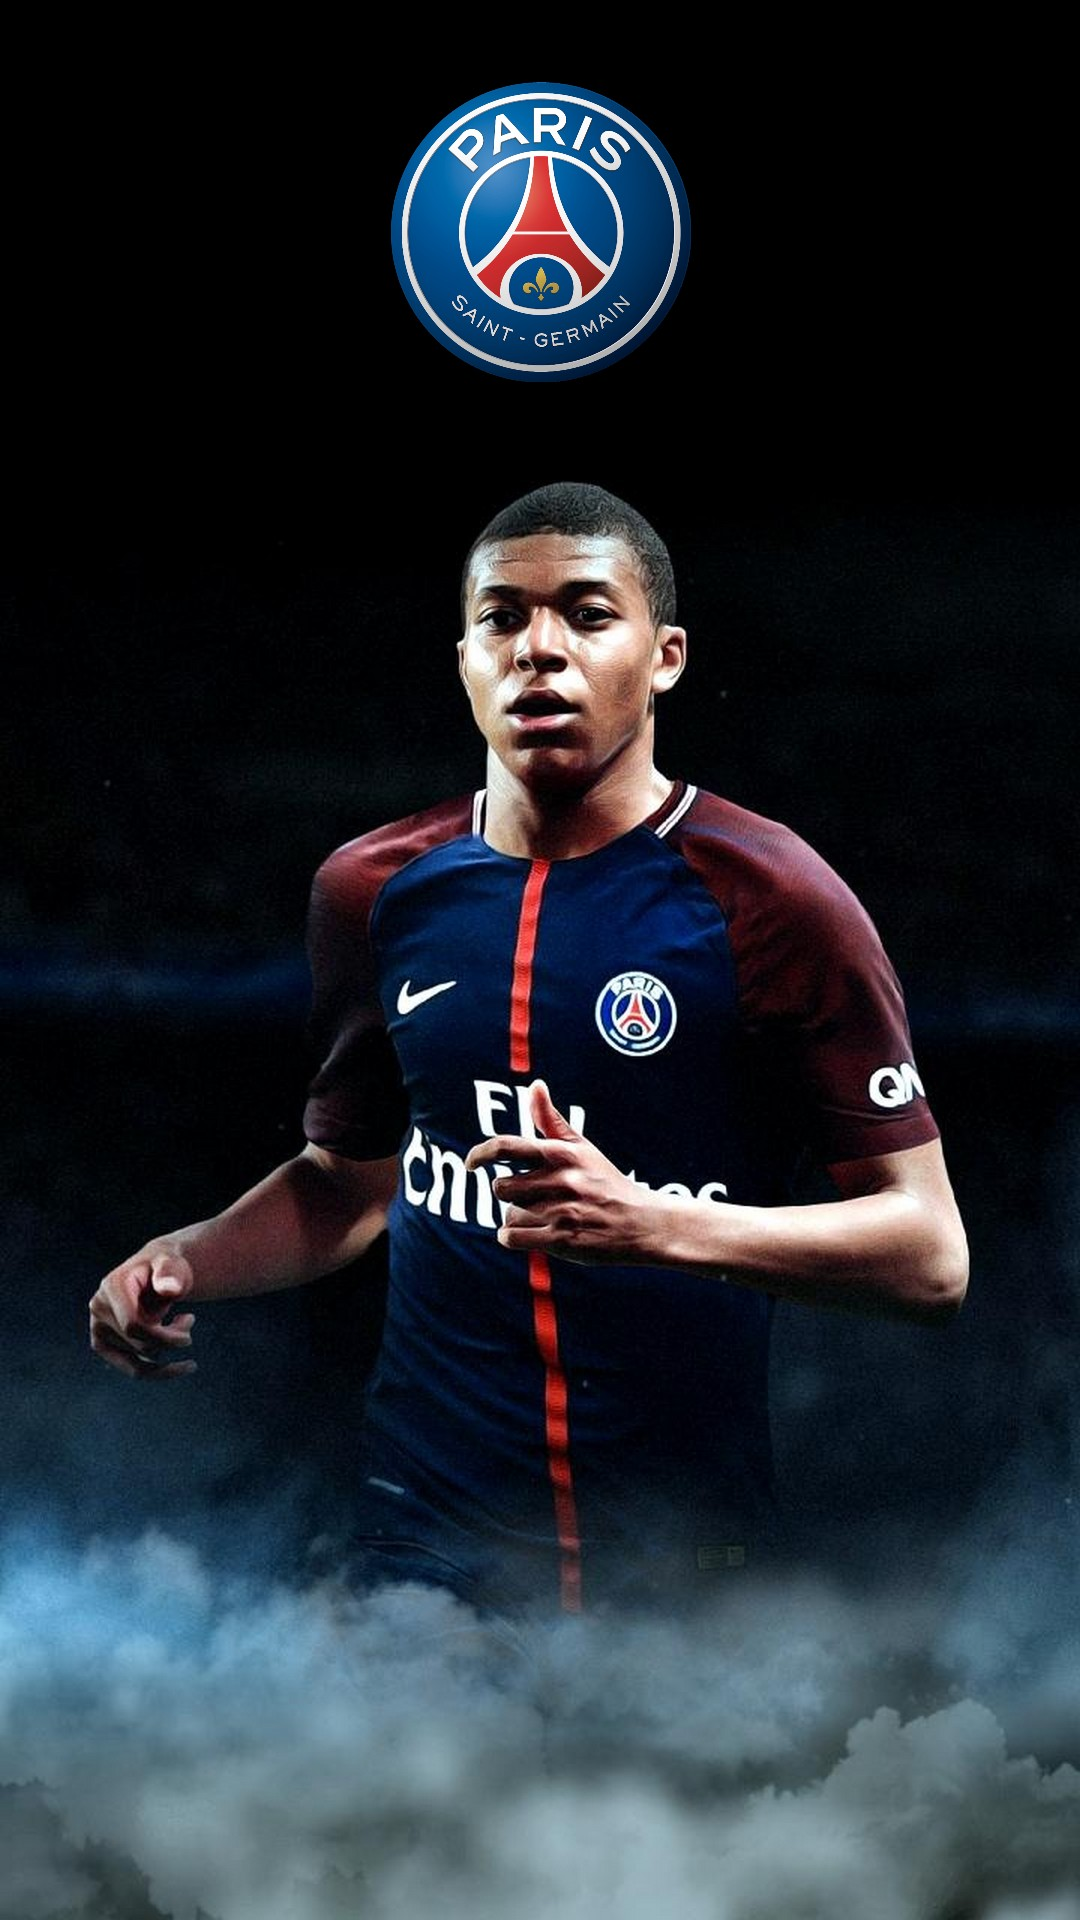 wallpaper kylian mbappe psg iphone